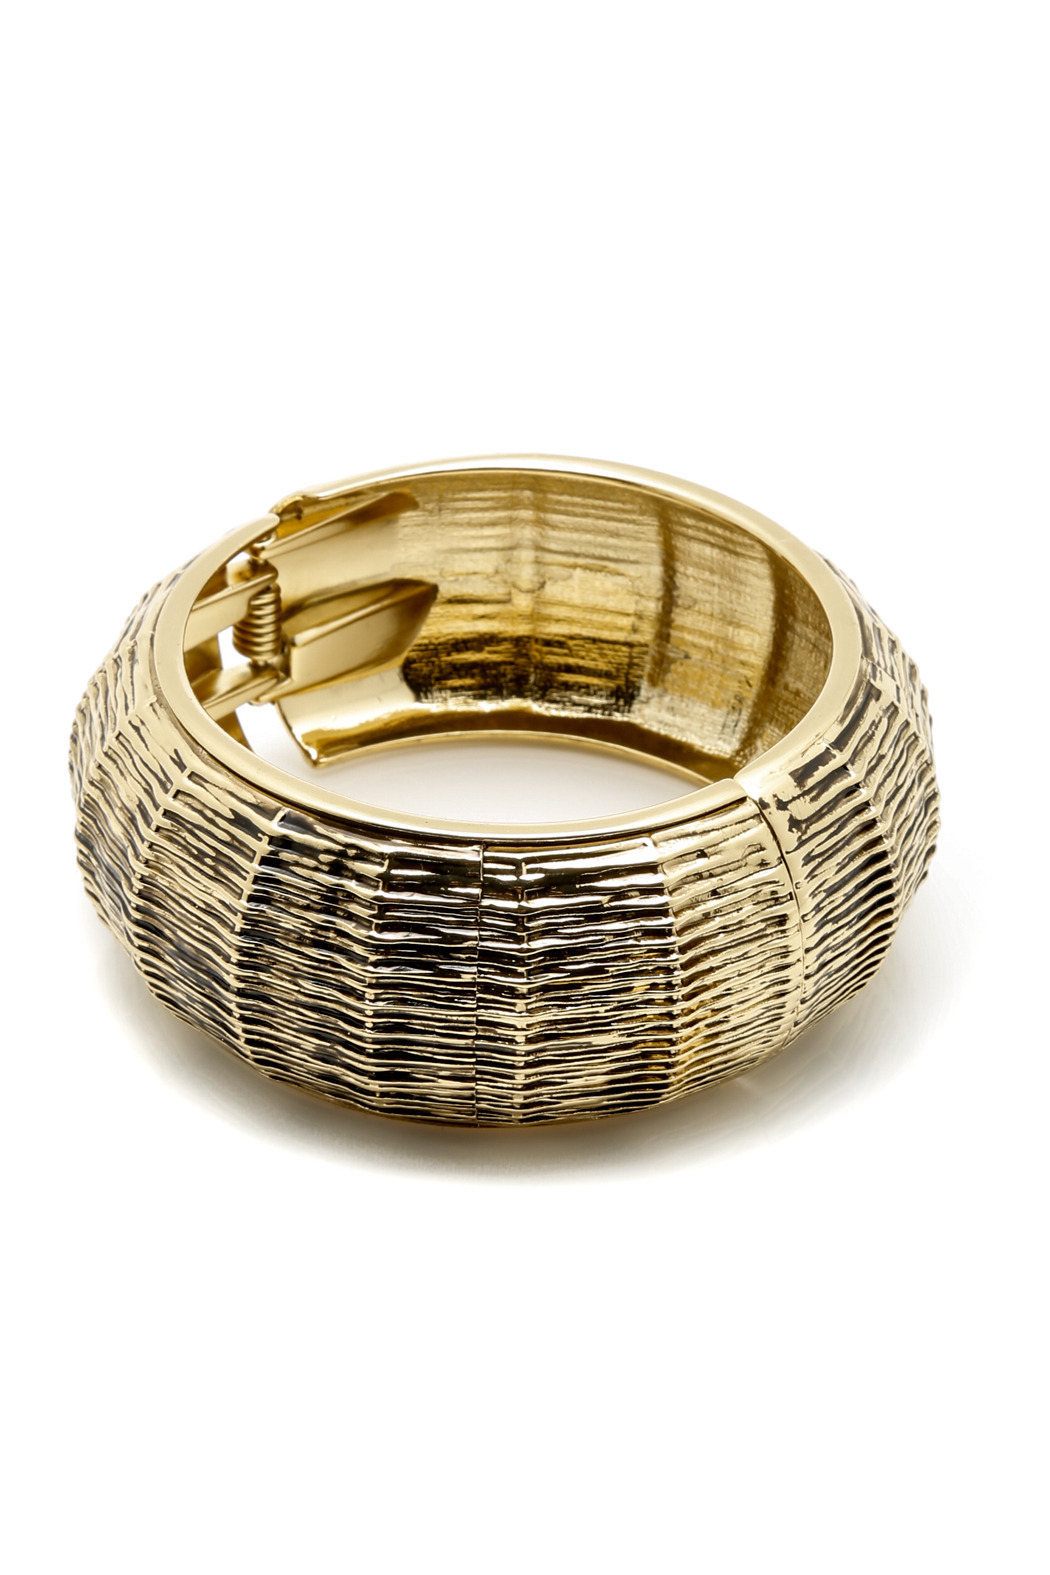 Basket Weaving Jewelry : My sister s jewelry box basket weave bangle from new